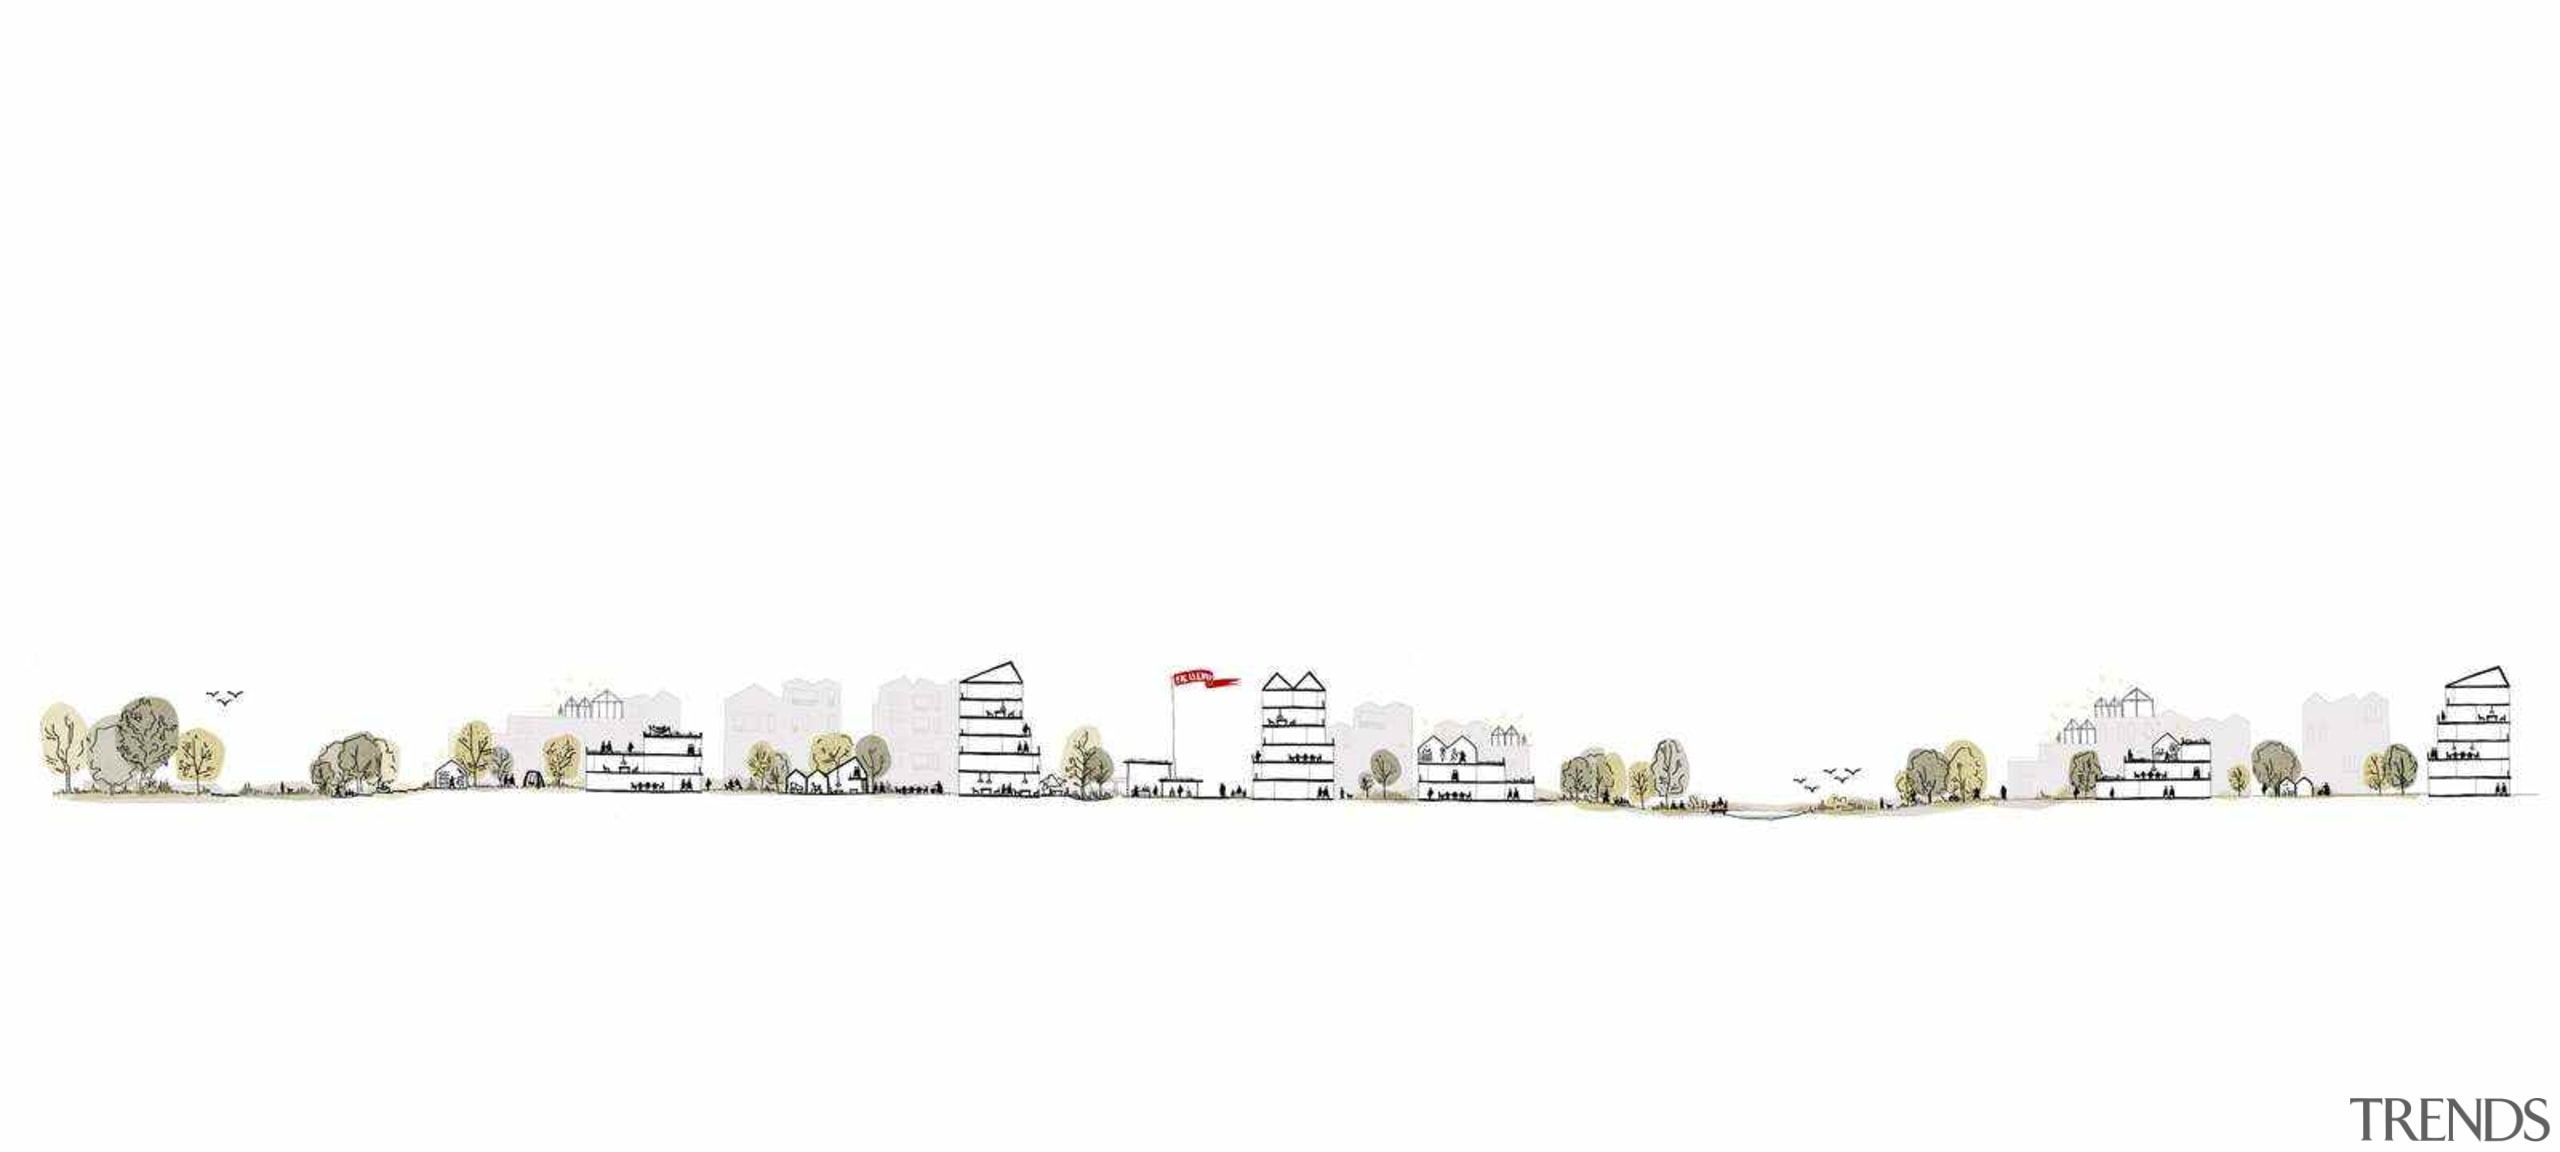 Nature and dwellings are interwoven at the new white